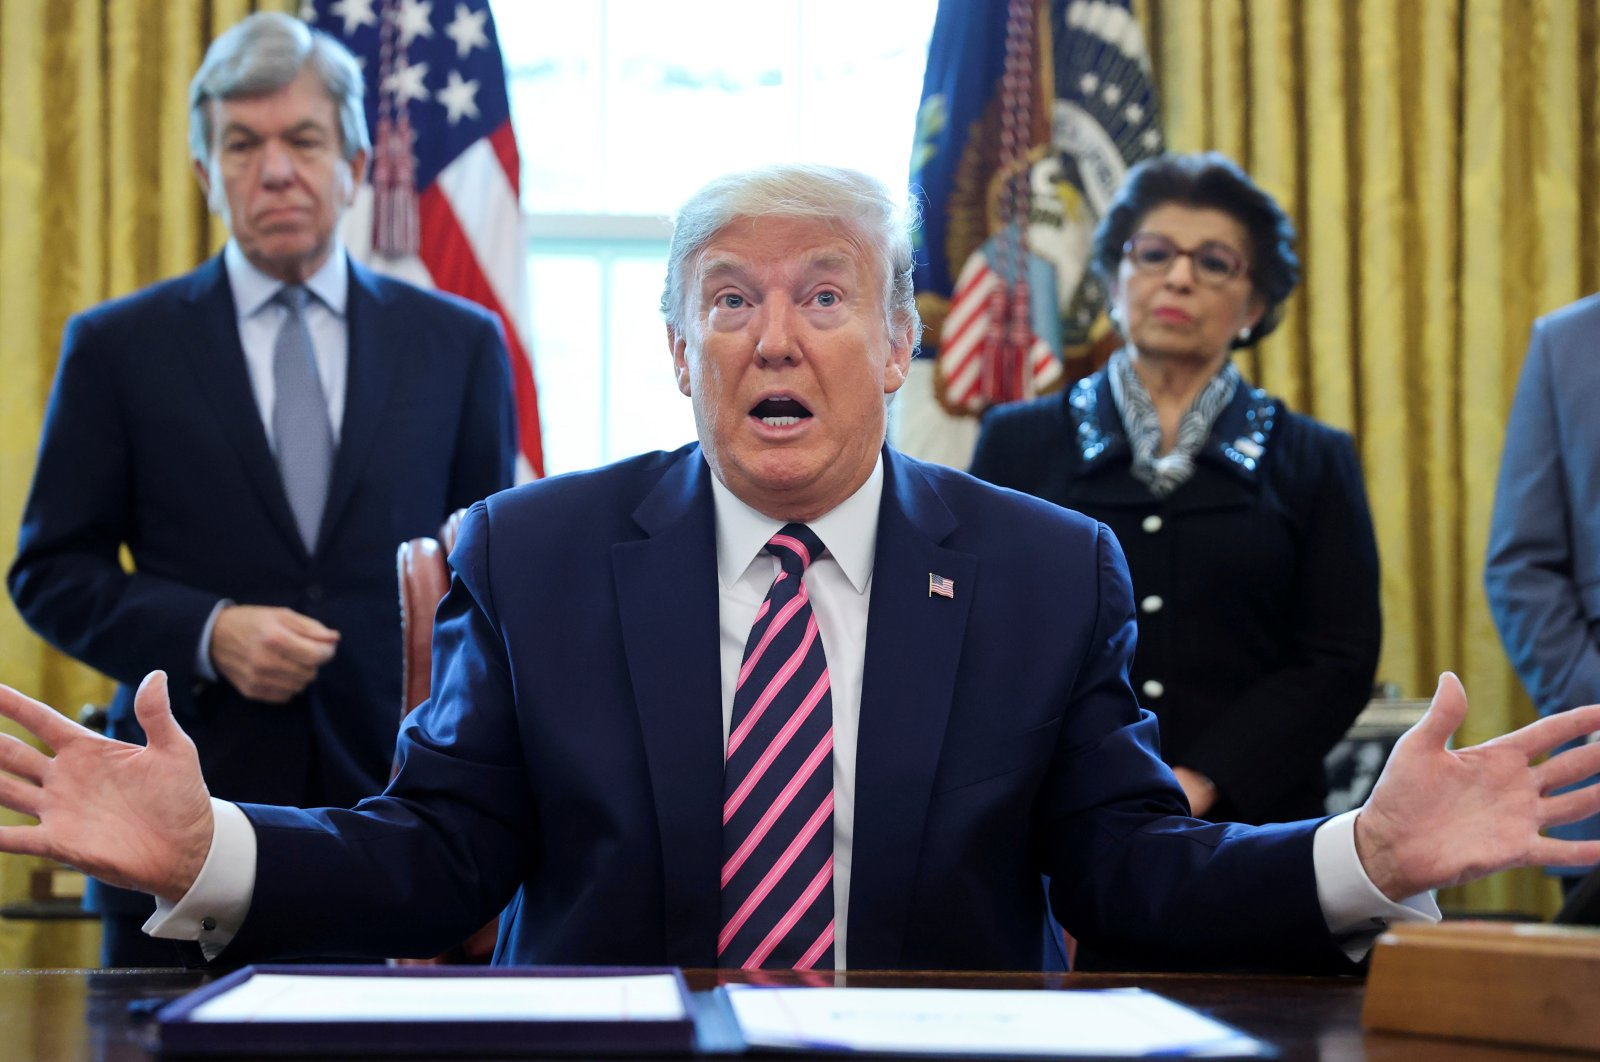 """U.S. President Donald Trump speaks to reporters during a signing ceremony for the """"Paycheck Protection Program and Health Care Enhancement Act,"""" approving additional COVID-19 relief for the U.S. economy and hospitals treating people sickened by the pandemic, in the Oval Office at the White House in Washington, U.S., April 24, 2020. (Reuters Photo)"""